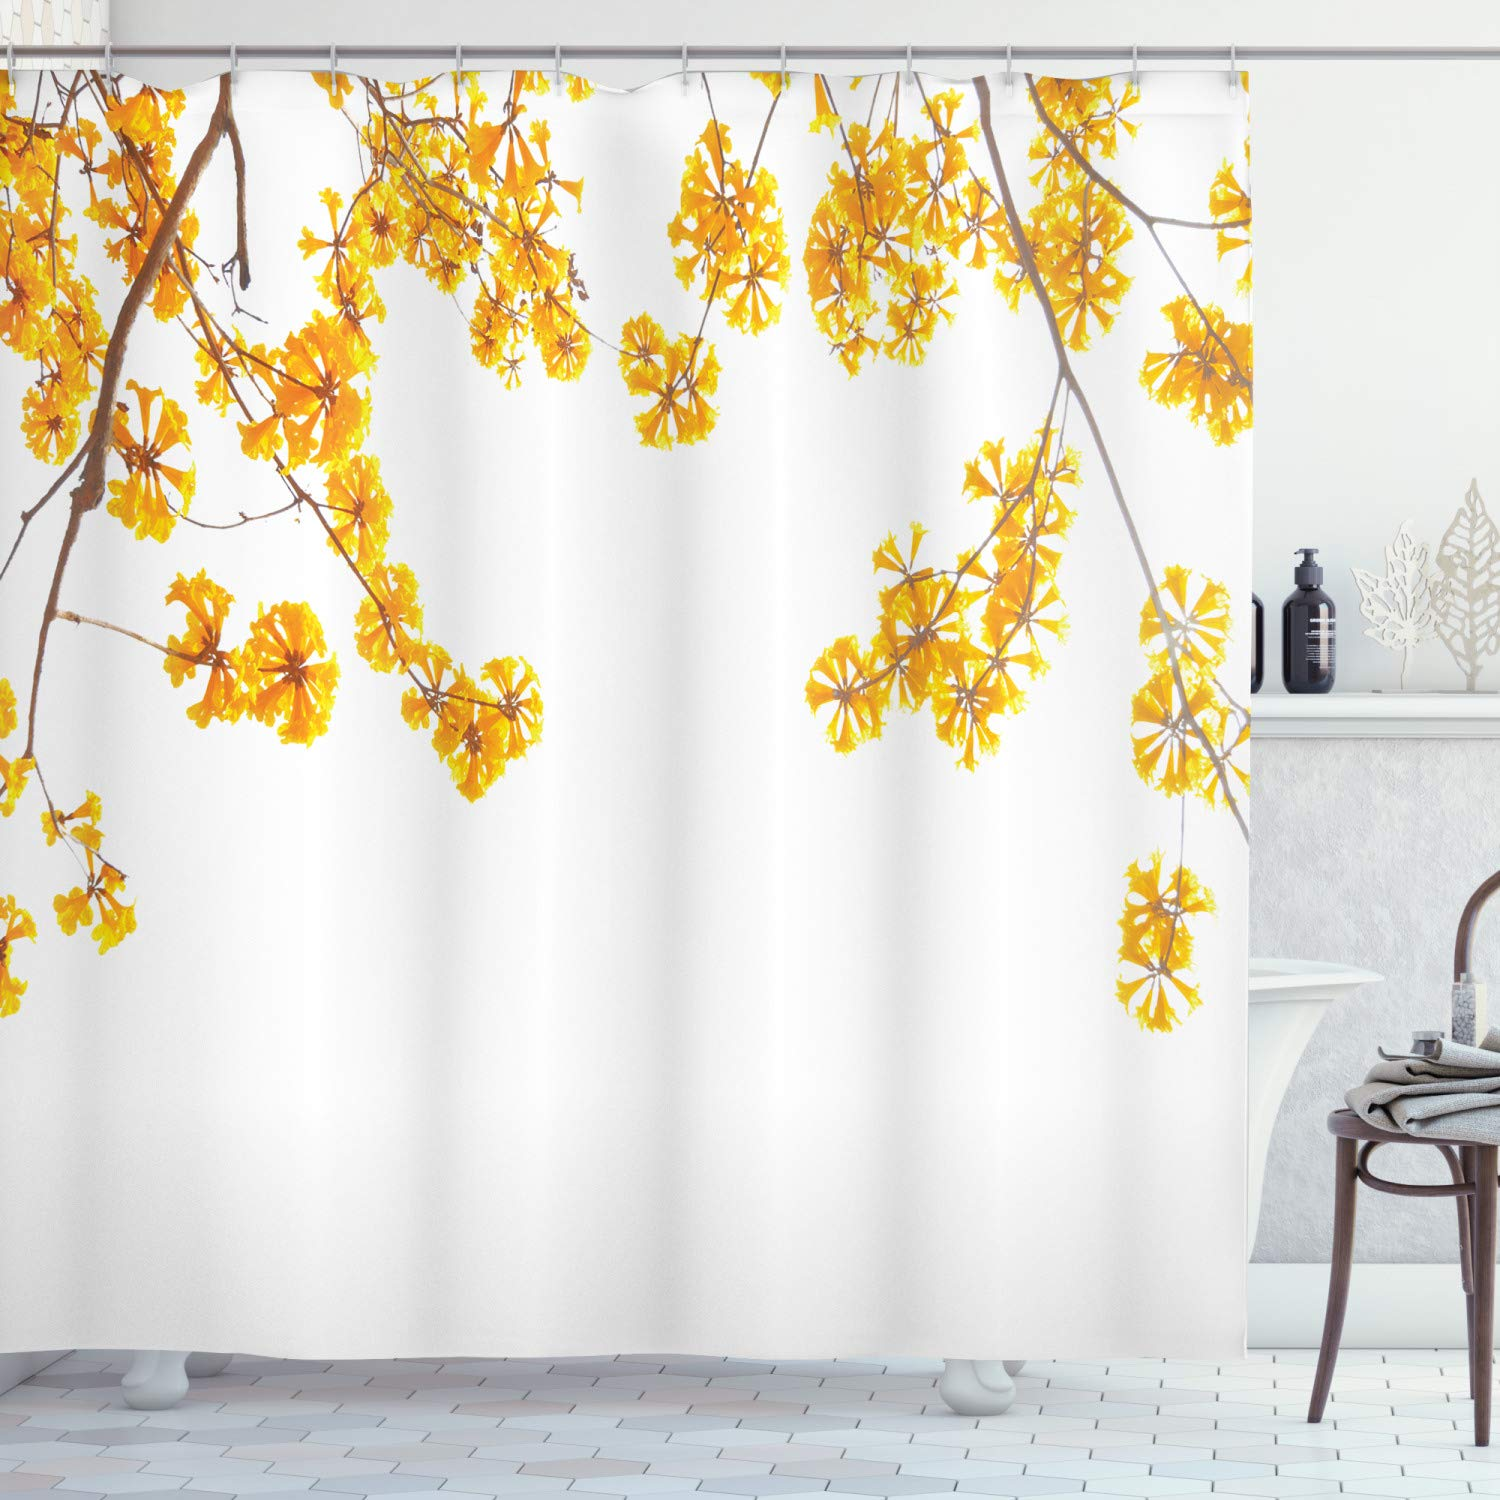 yellow shower curtain flower tree branches bloom blossoming in spring garden sun rays nature theme home bathroom